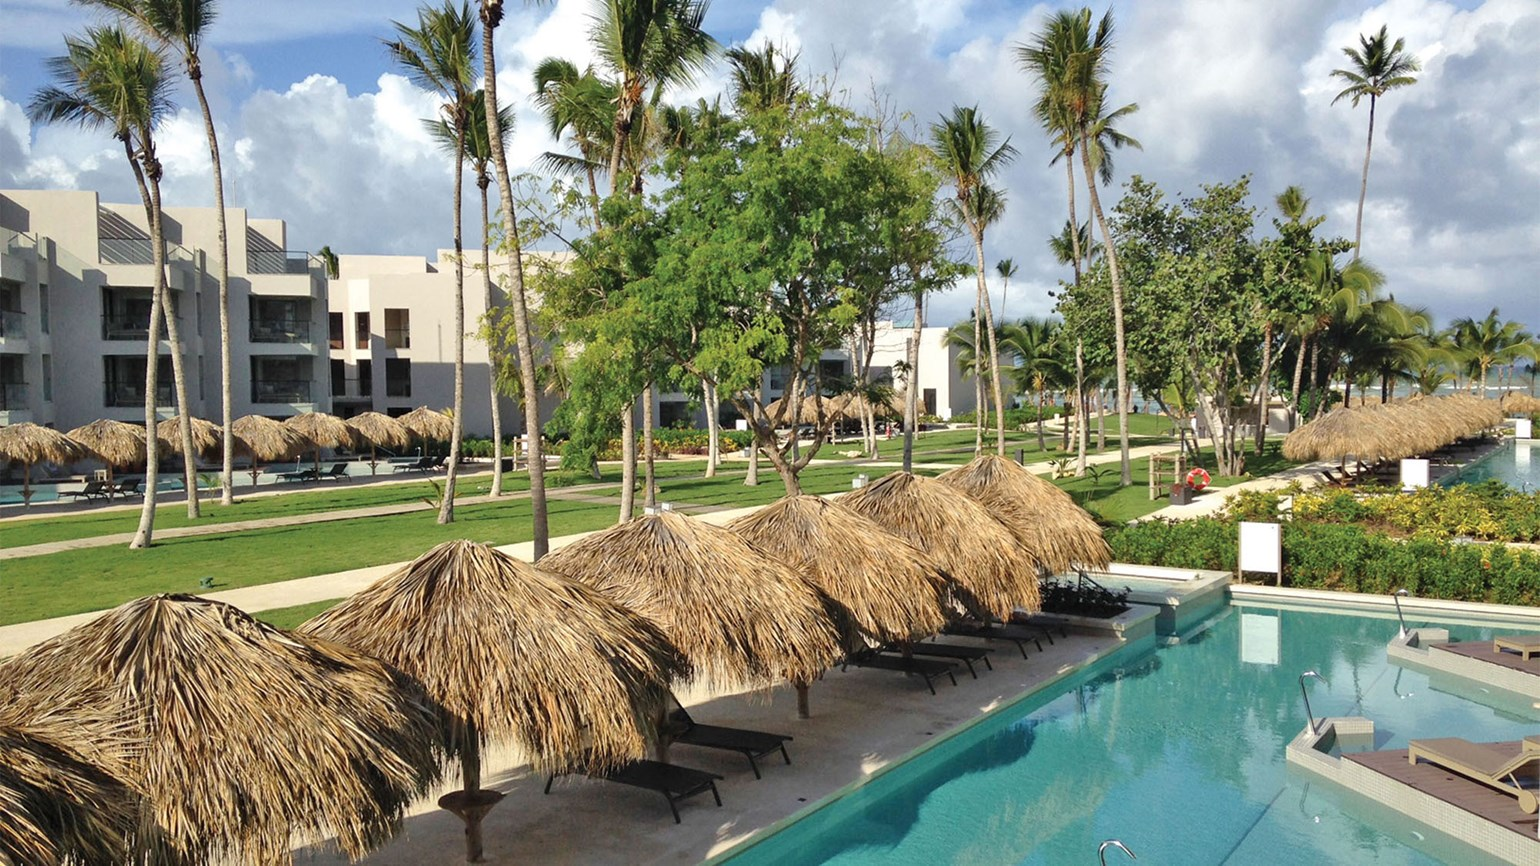 In Punta Cana, Excellence excels at service